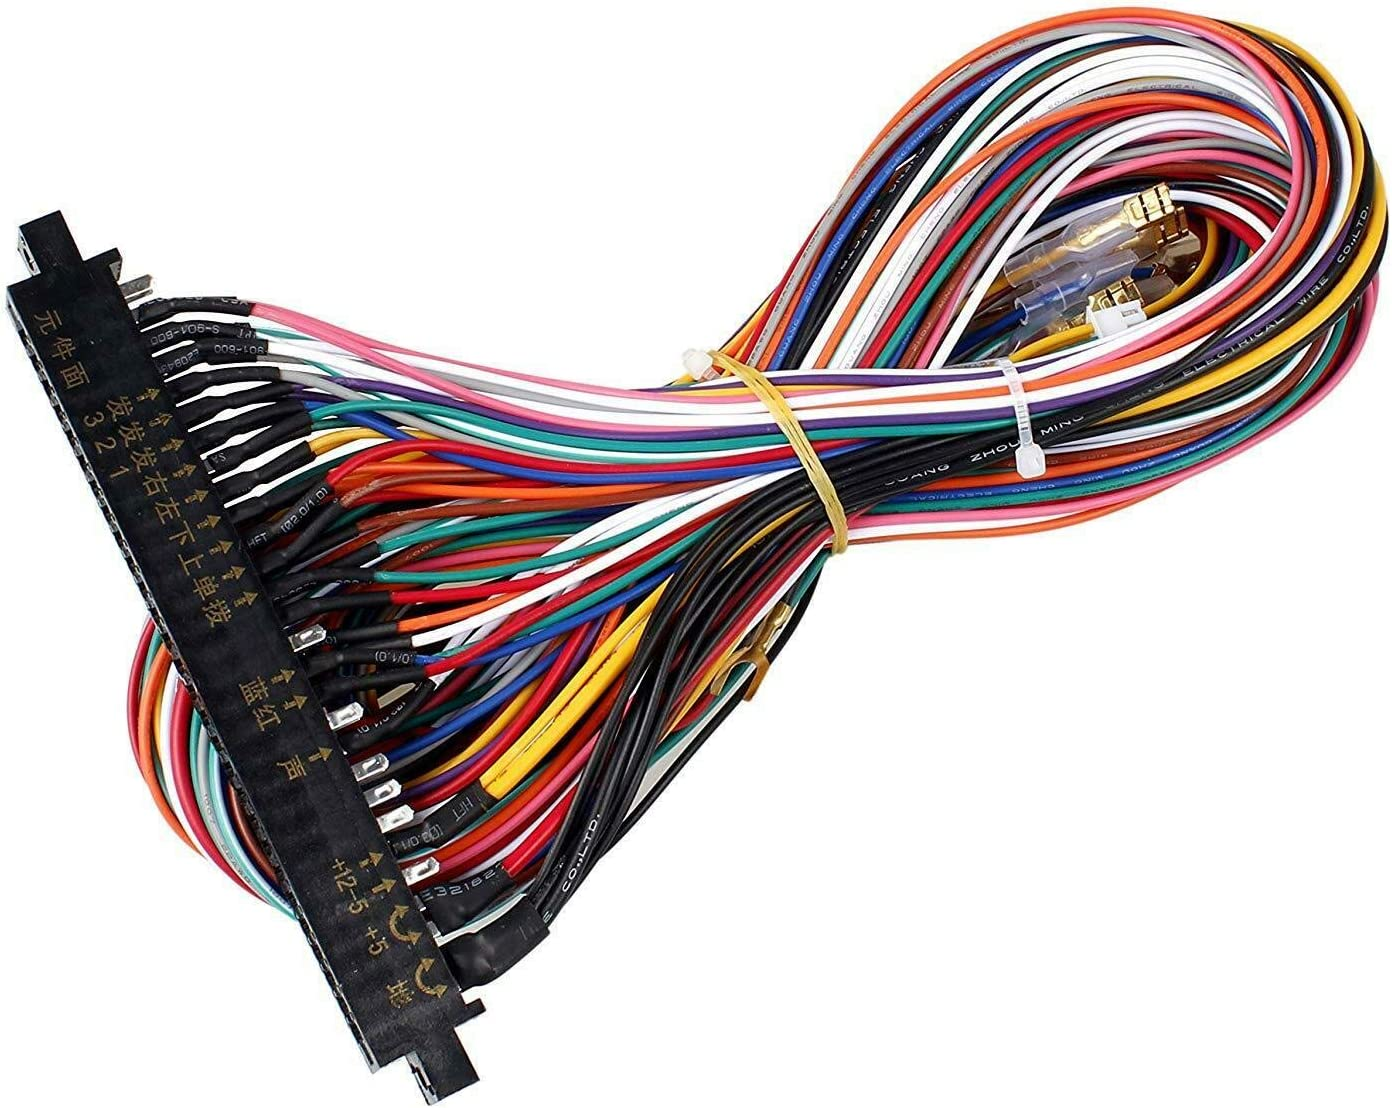 [DIAGRAM_5NL]  Amazon.com: Atomic Market 28 Pins Jamma Harness Cabinet Wire Wiring Loom  for Arcade Game PCB Video Board: Toys & Games | Custom Harness Wiring Looms |  | Amazon.com